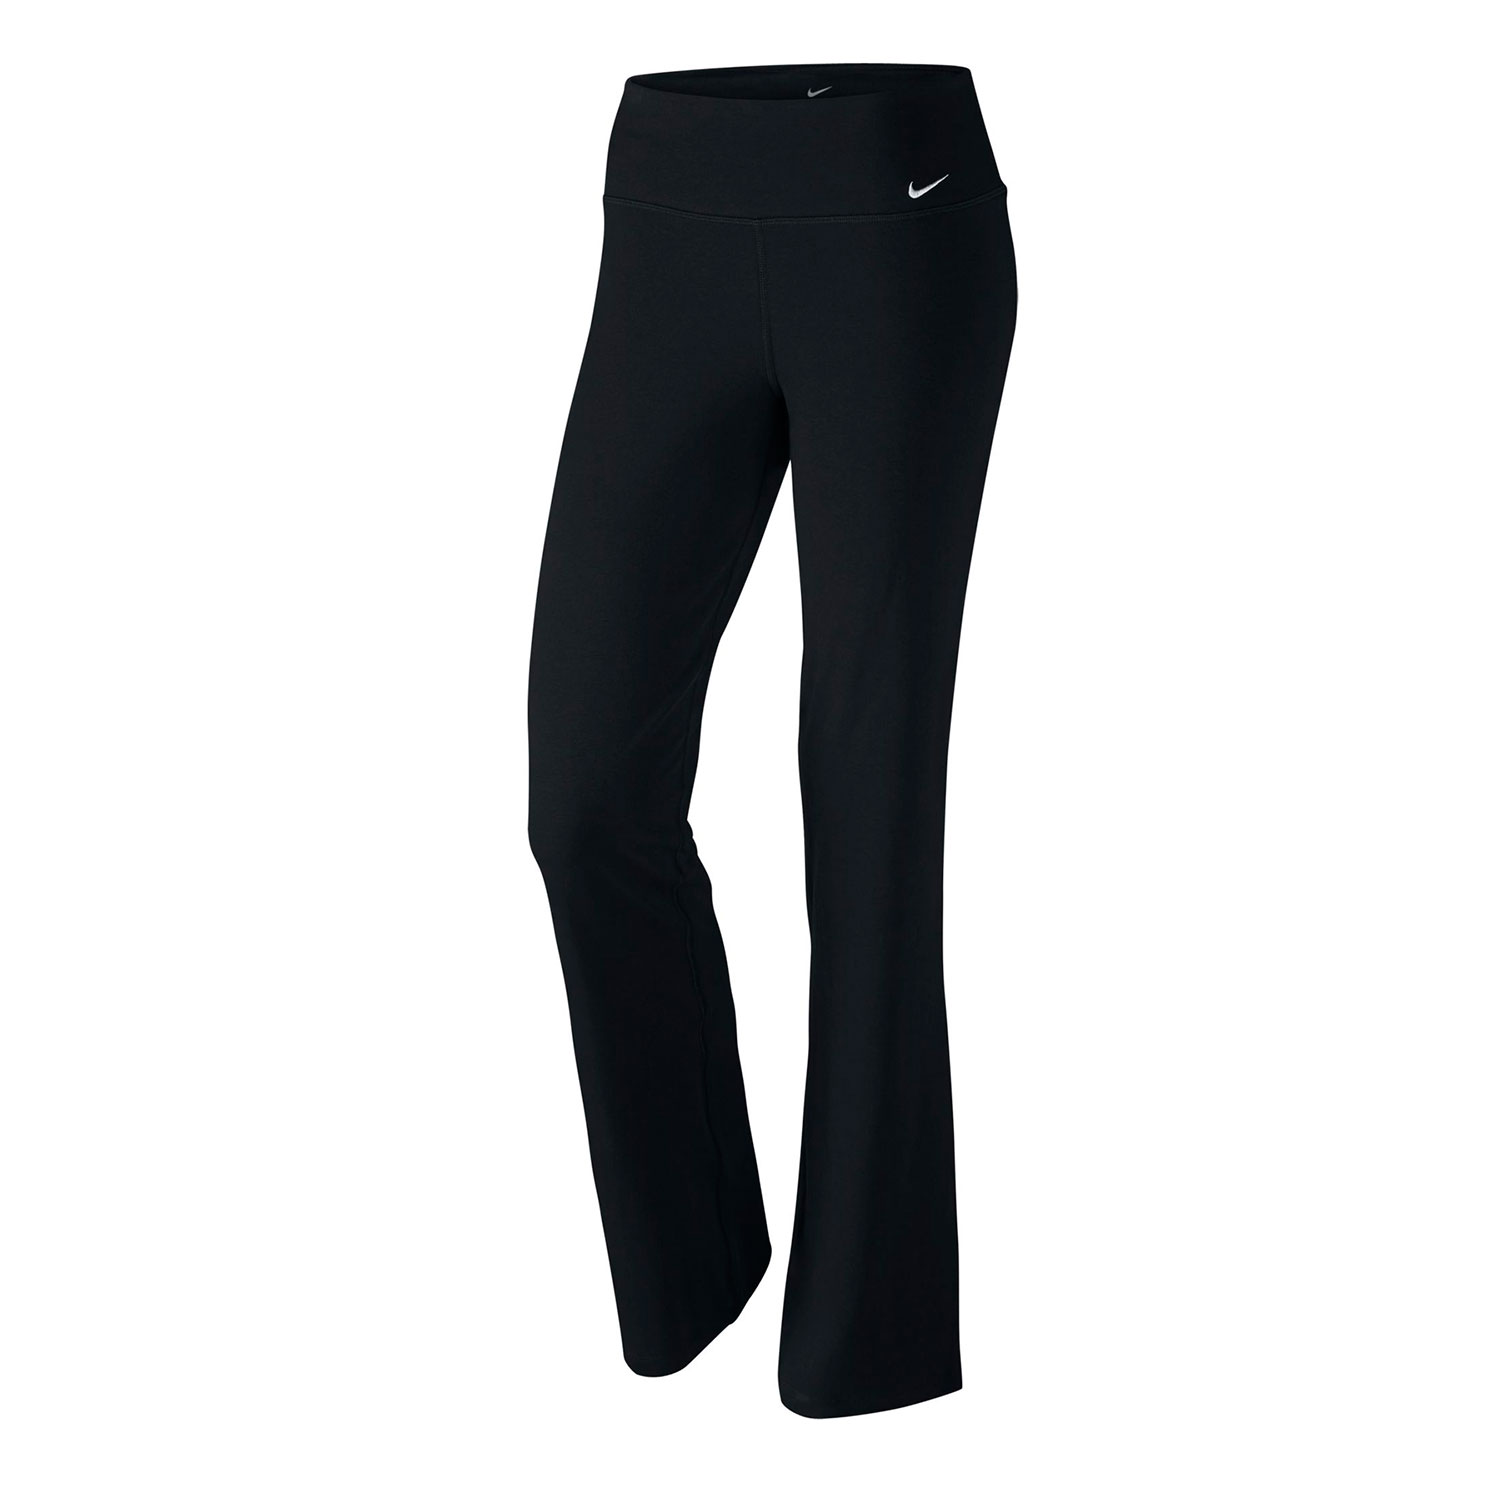 Excellent Image For Nike Women39s Legend 20 Tight DriFIT Cotton Pant From